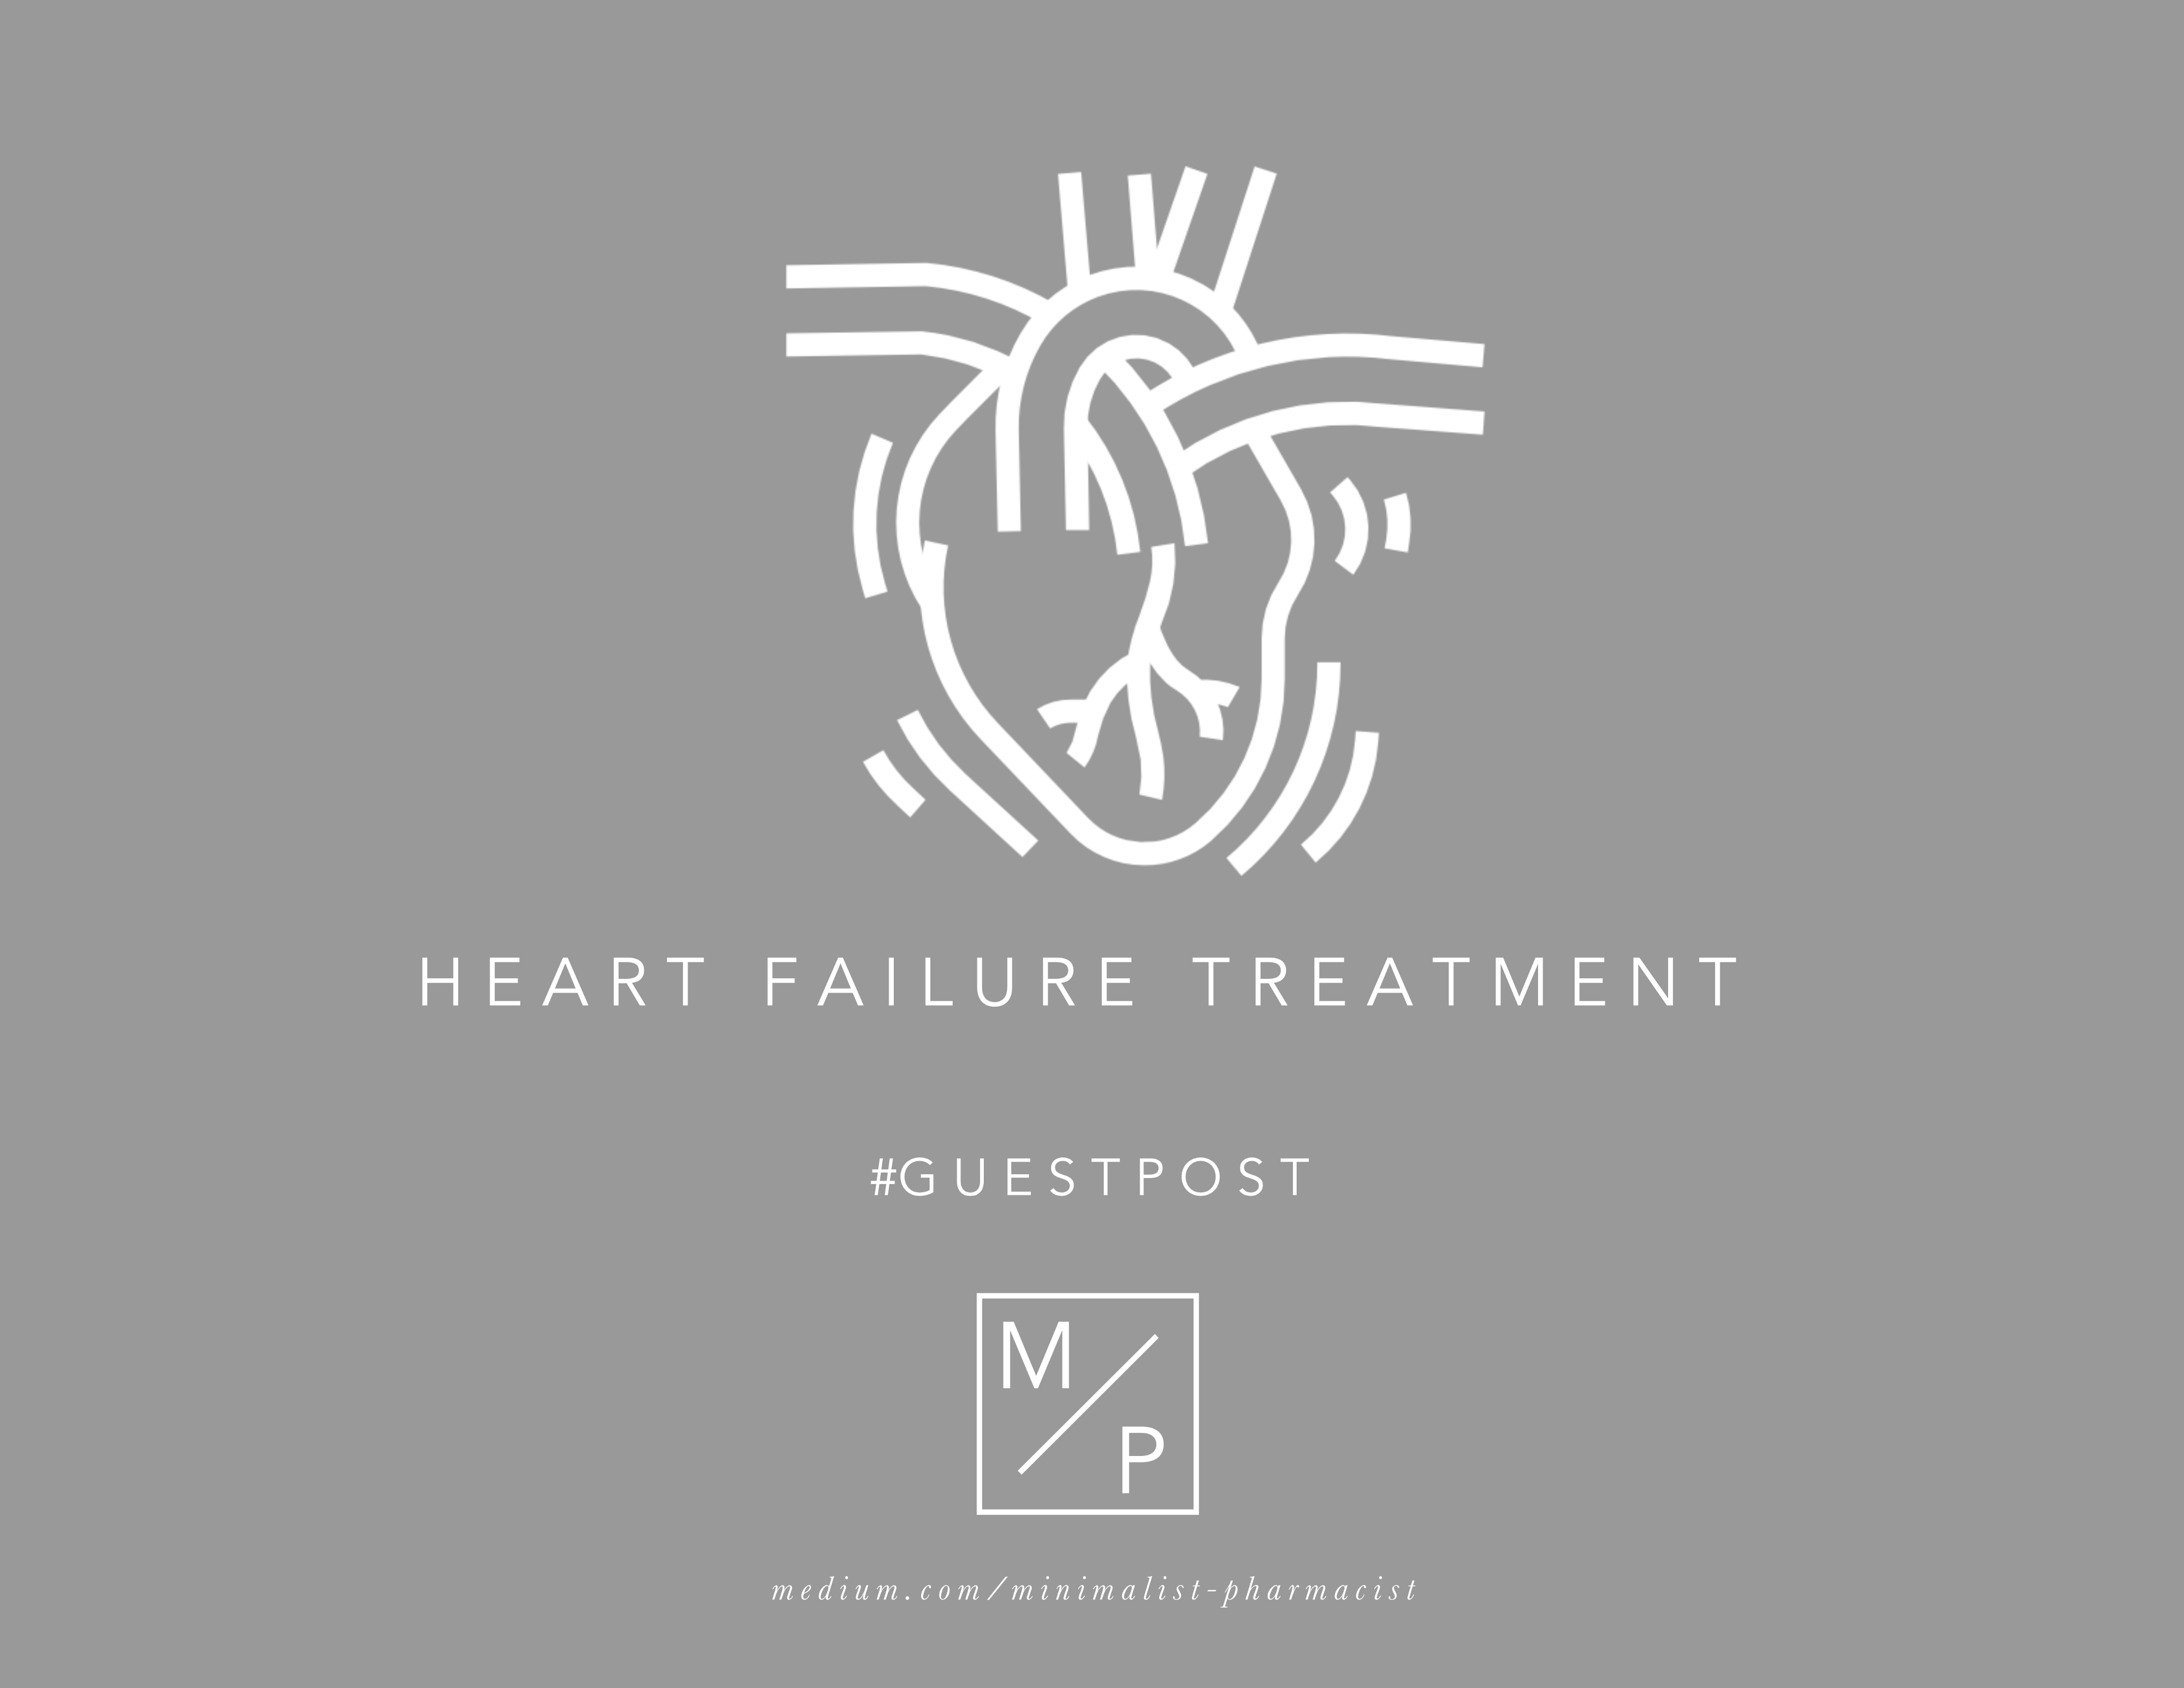 The Minimalist Approach To Chronic Heart Failure S Treatment Guidelines By Minimalist Pharmacist Admin Minimalist Pharmacist Medium